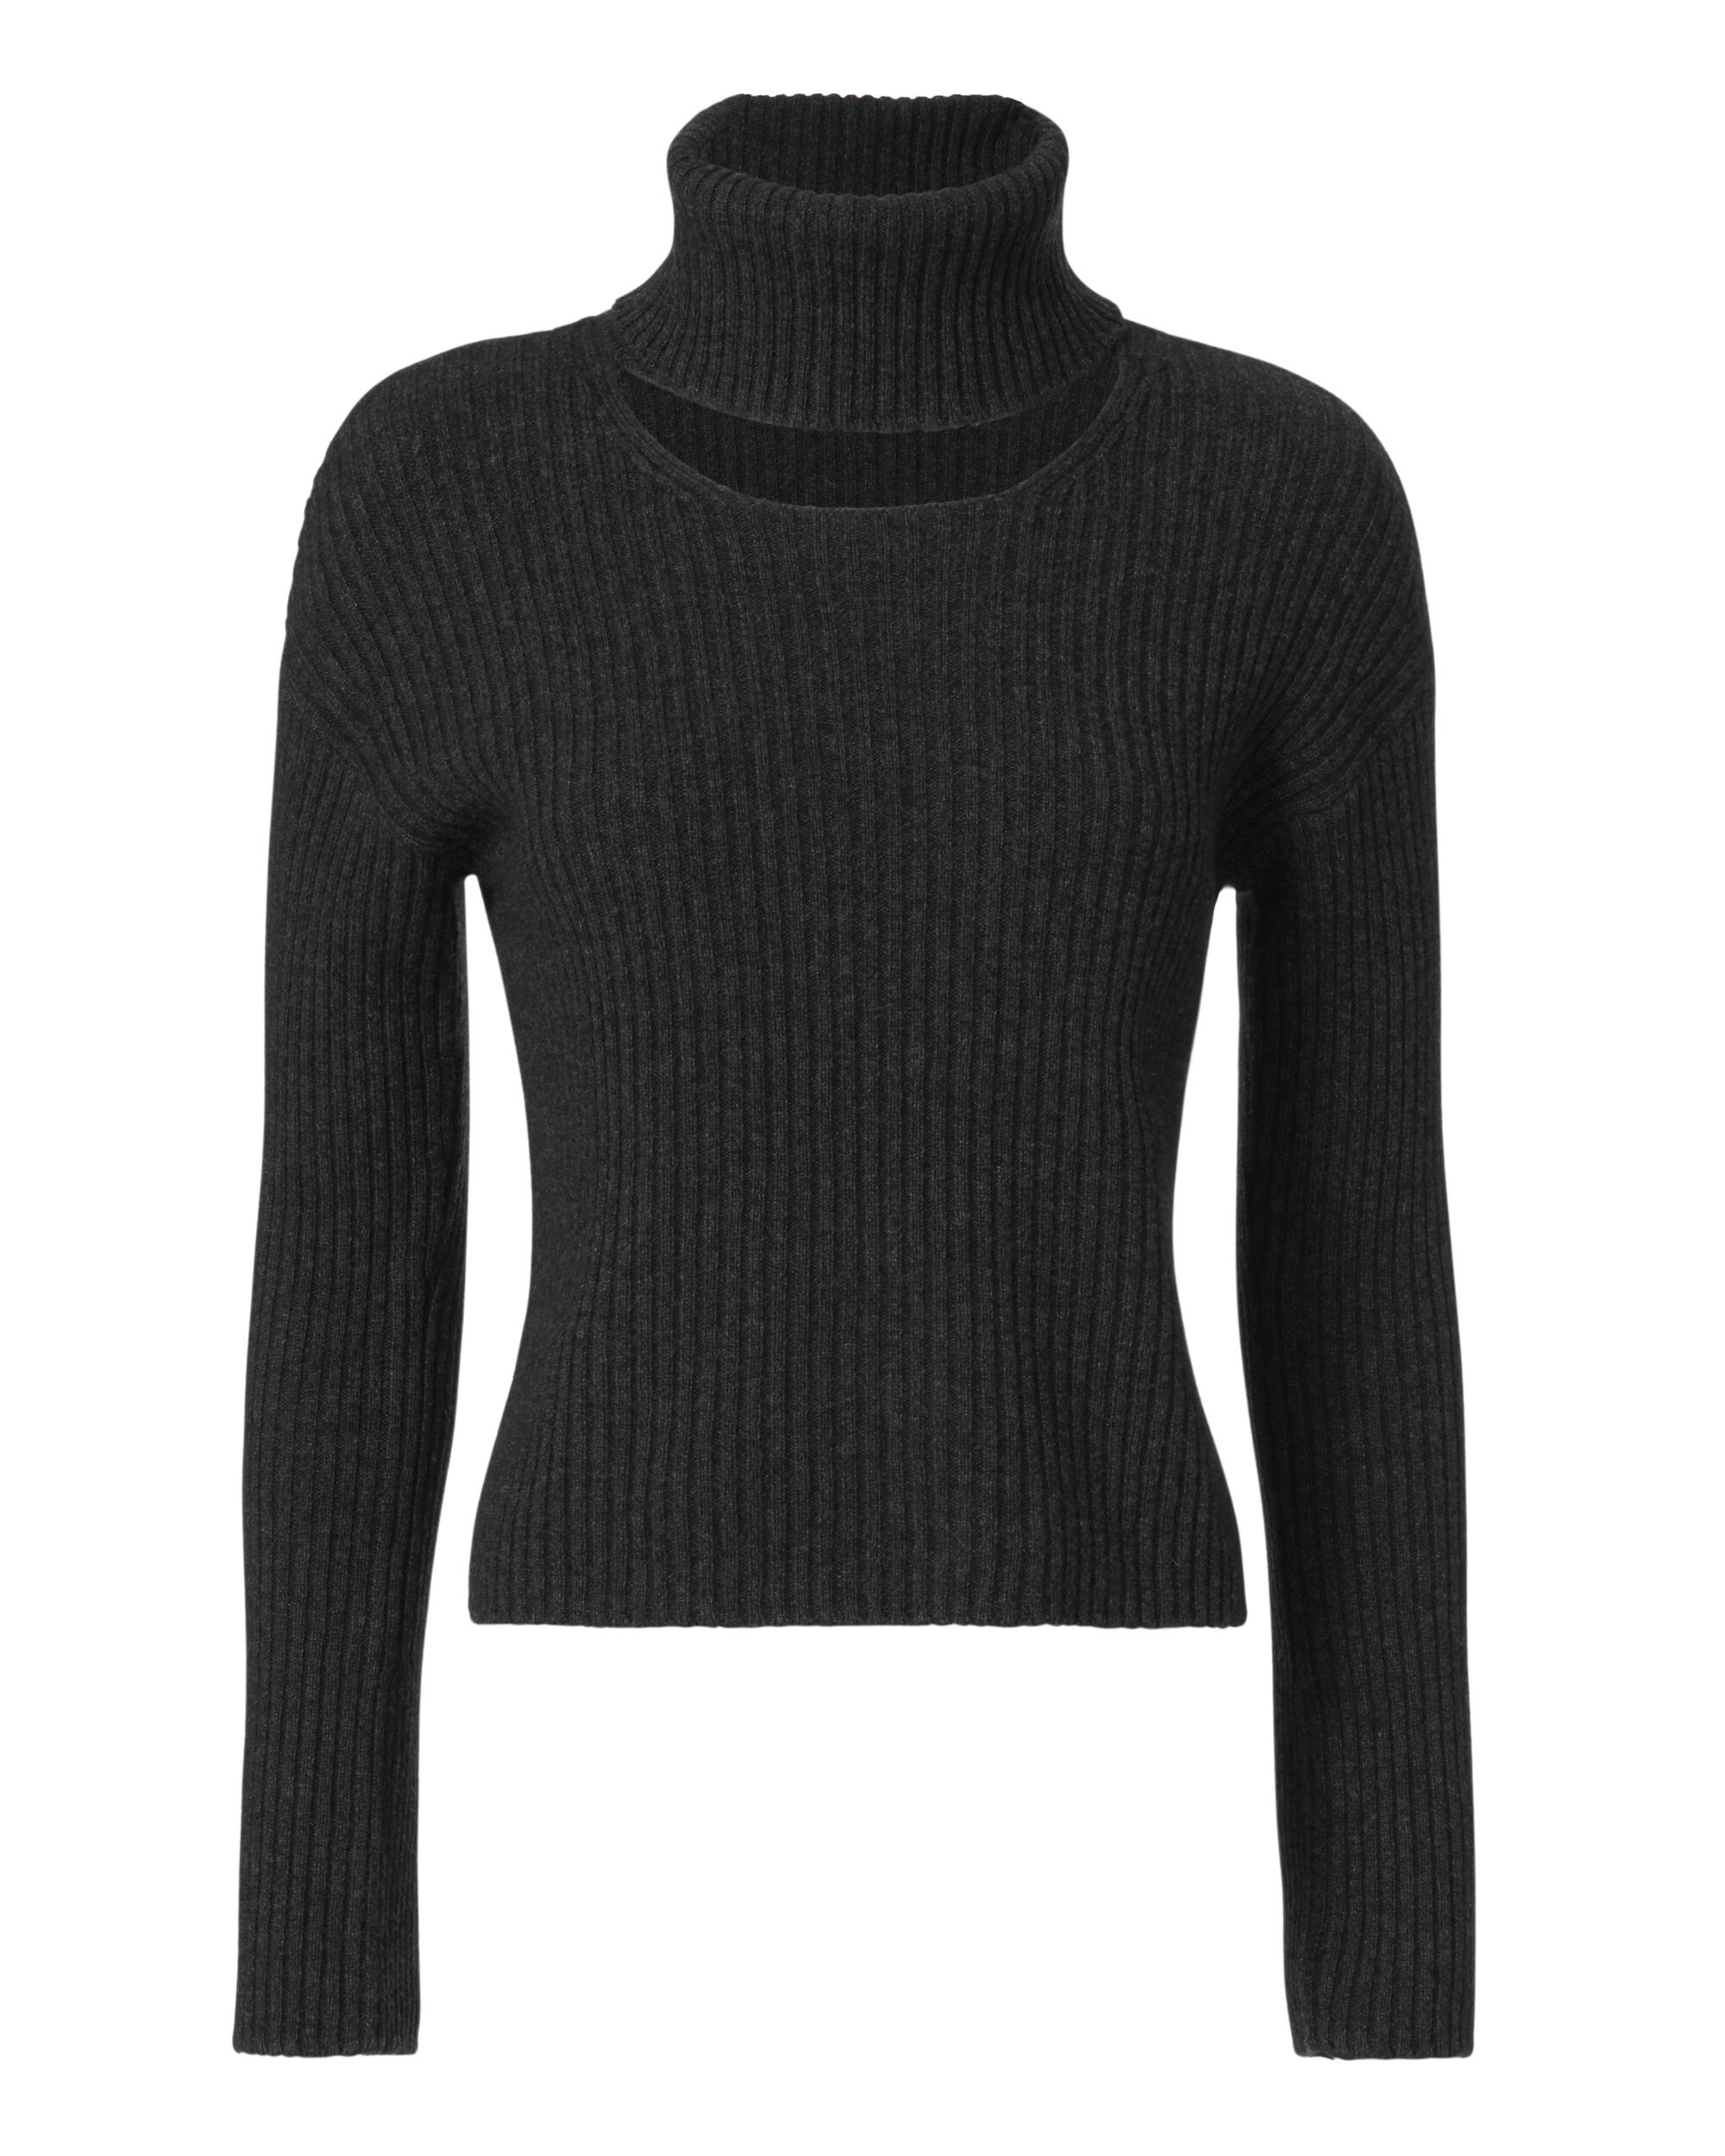 Marcella Turtleneck Cutout Sweater, CHARCOAL, hi-res